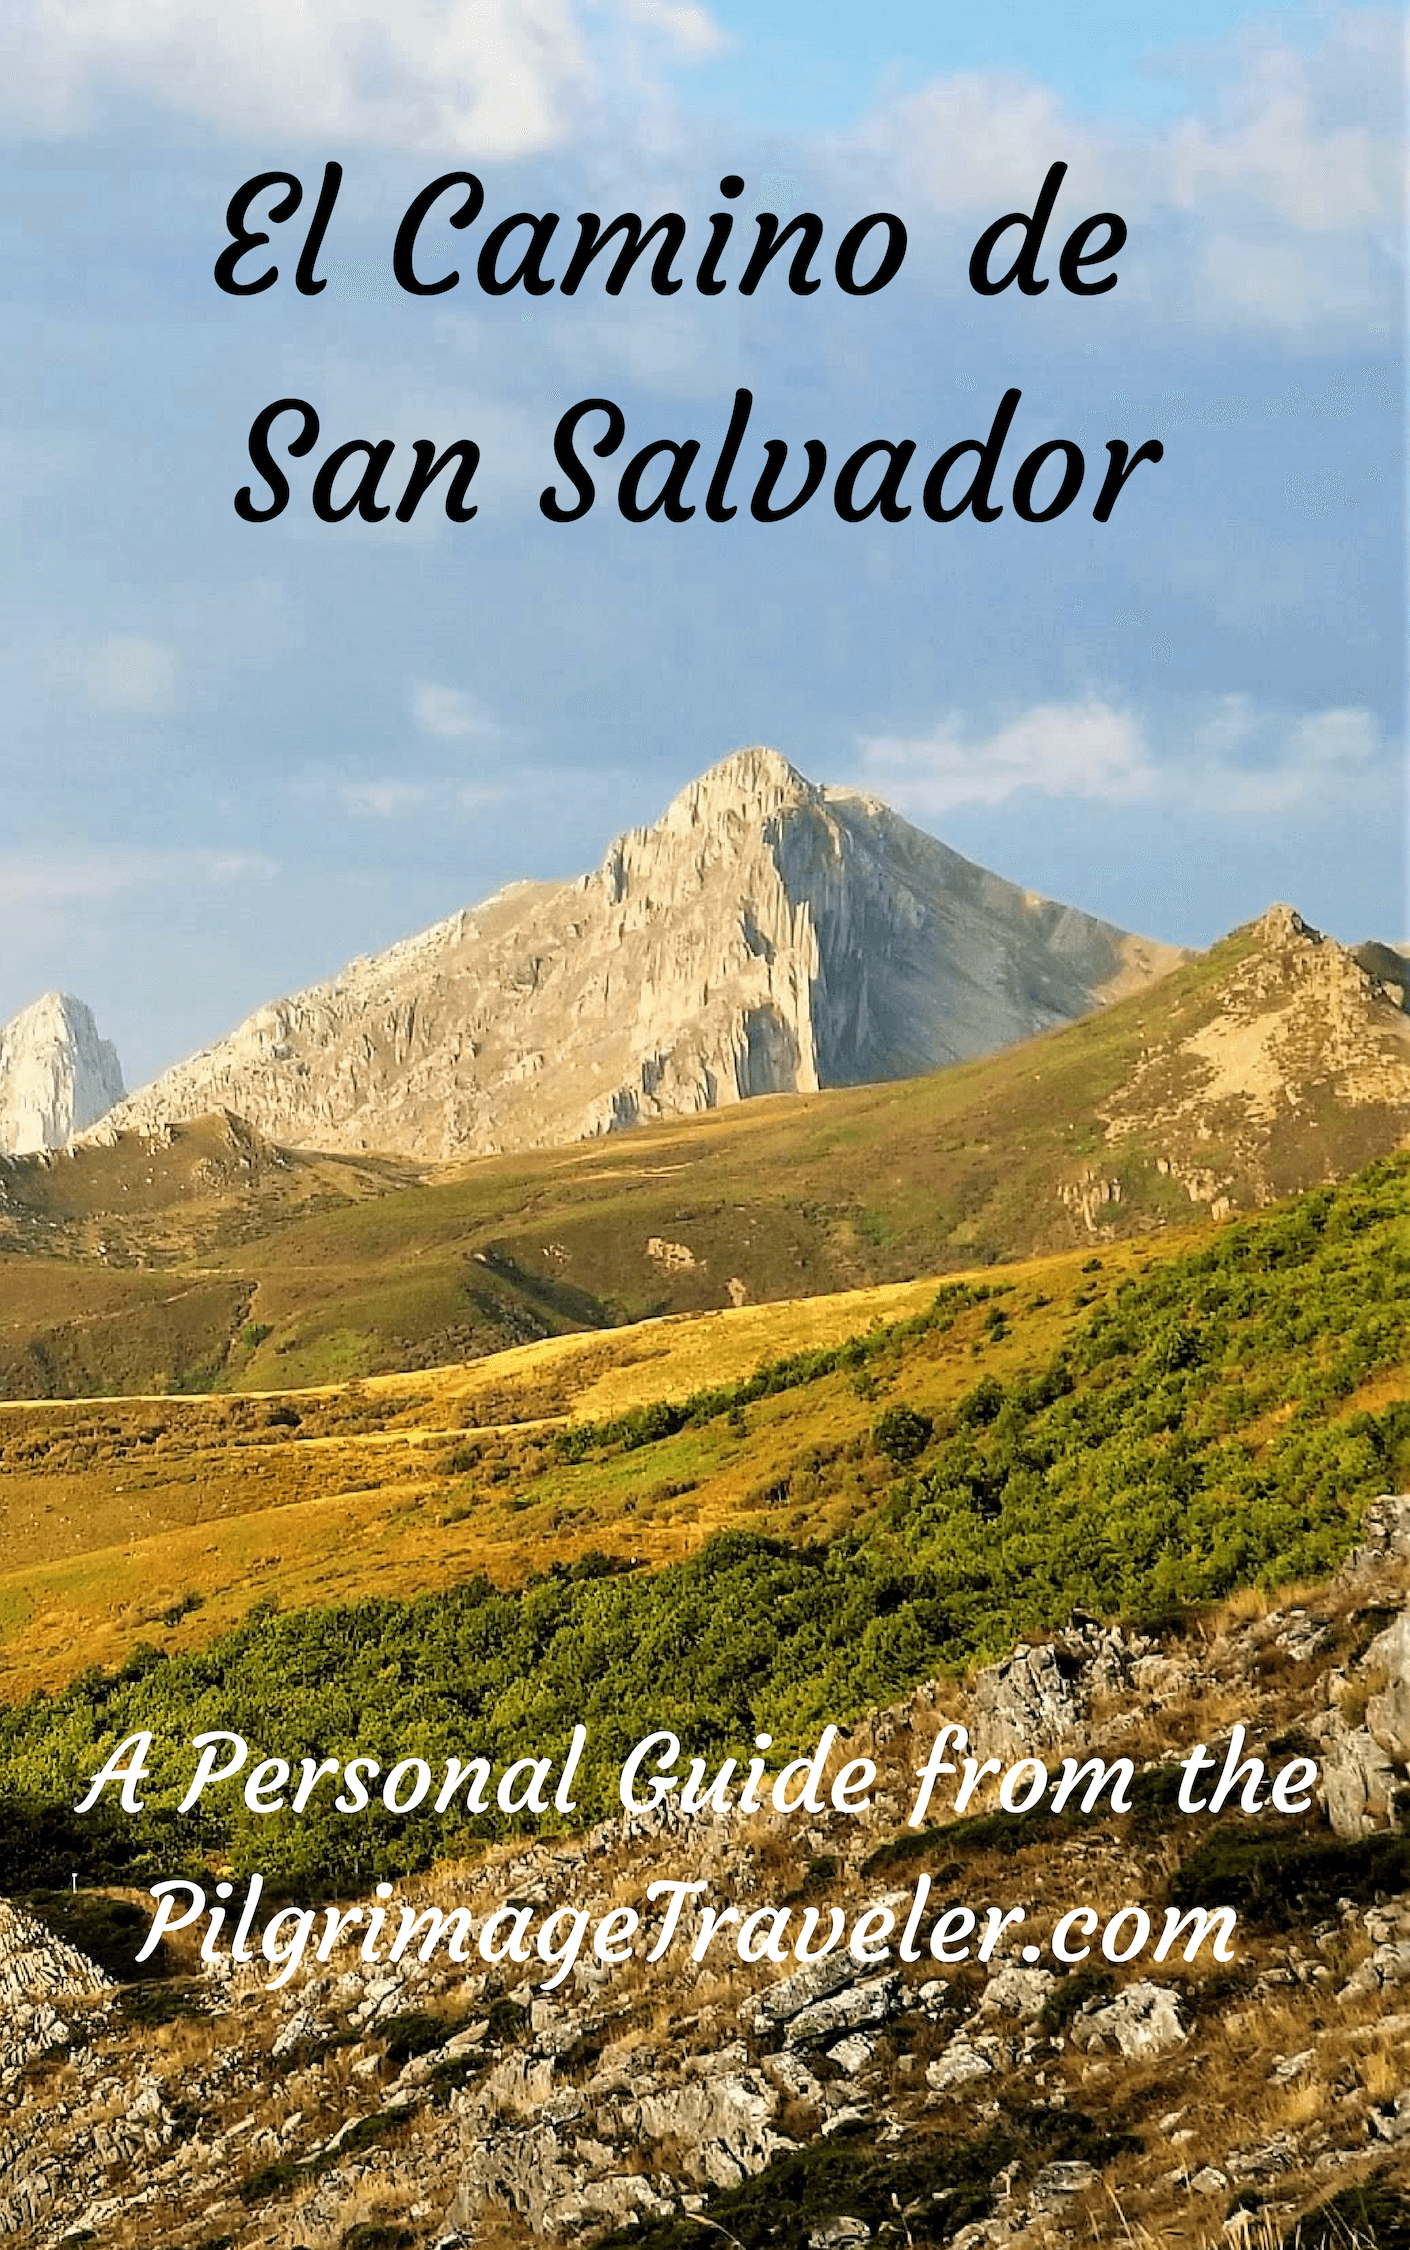 Camino de San Salvador e-book cover photo